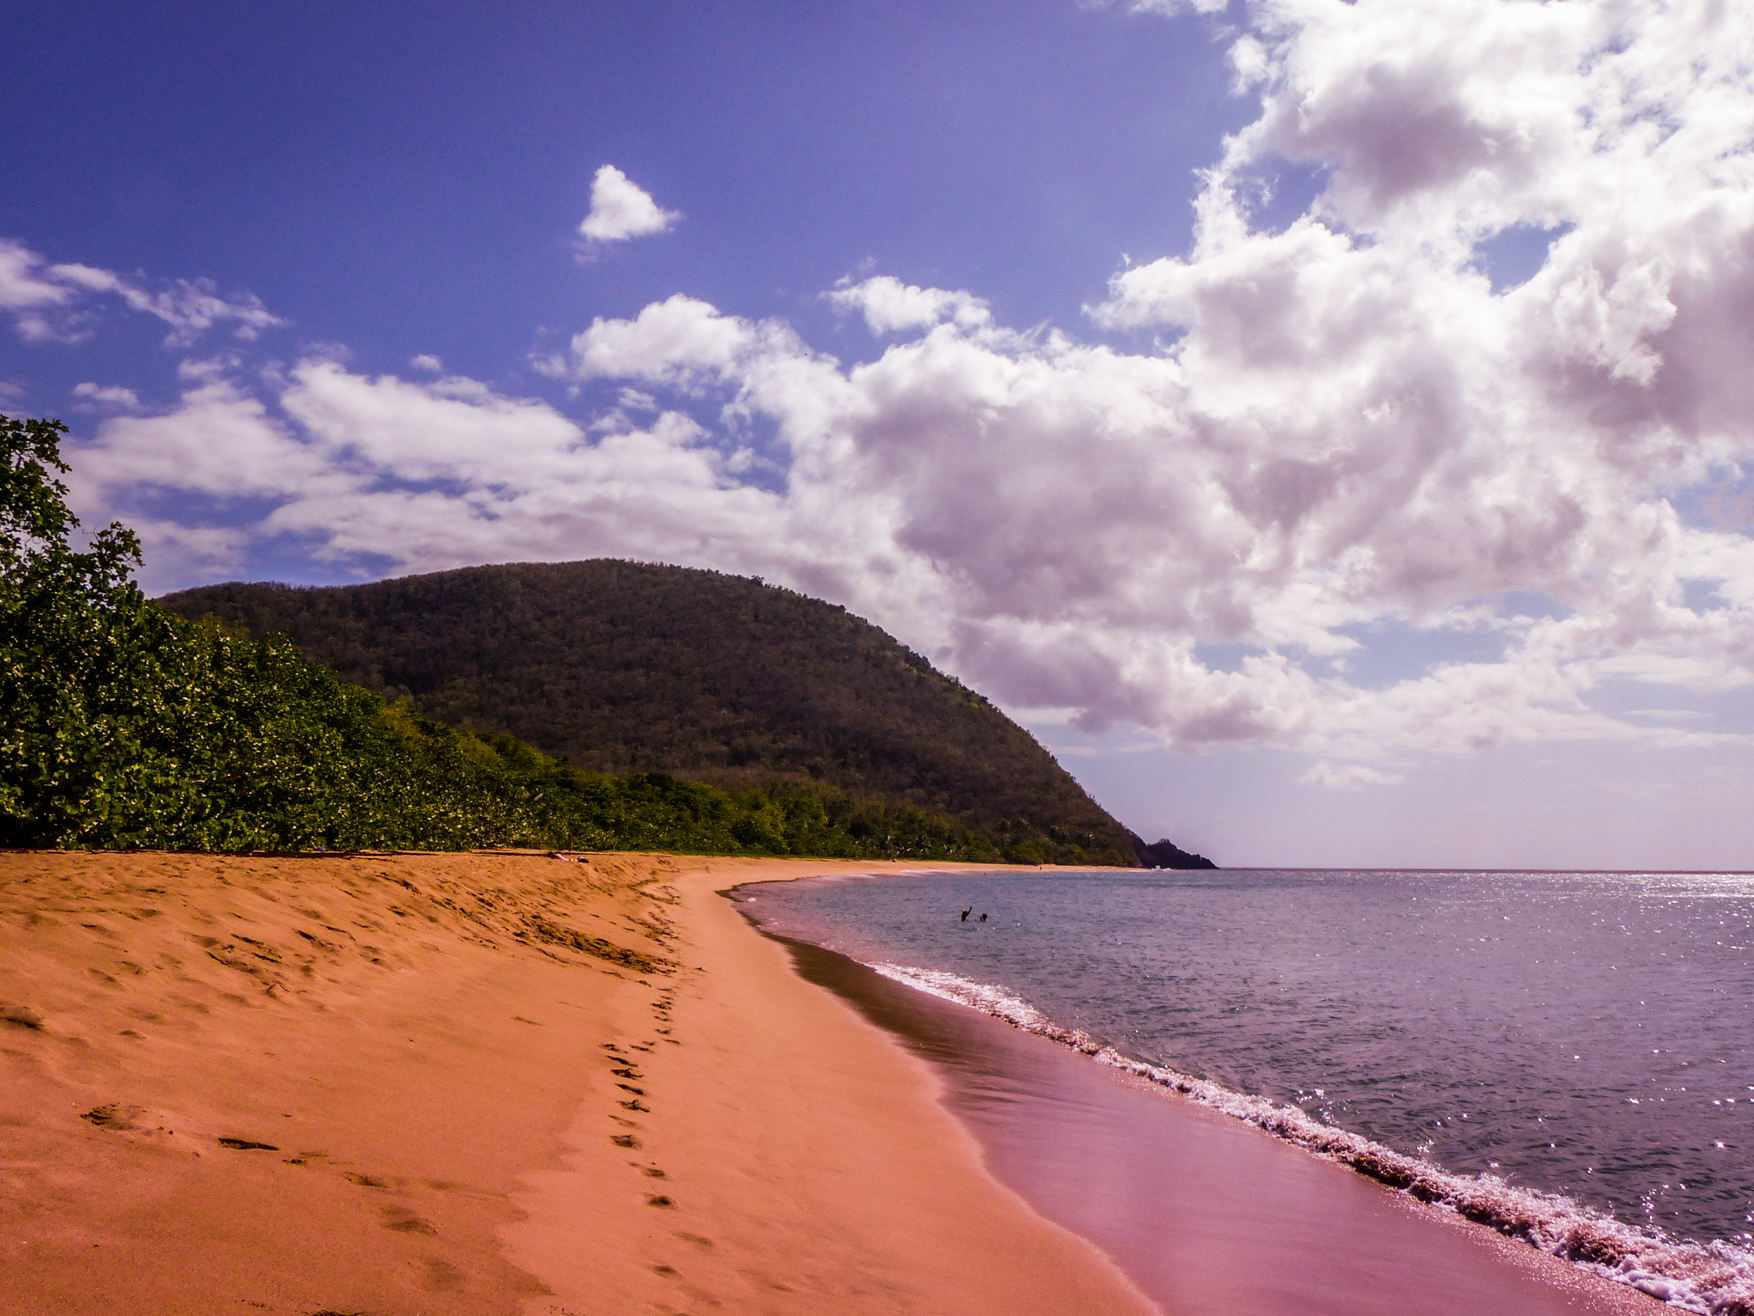 plage-grande-anse-guadeloupe